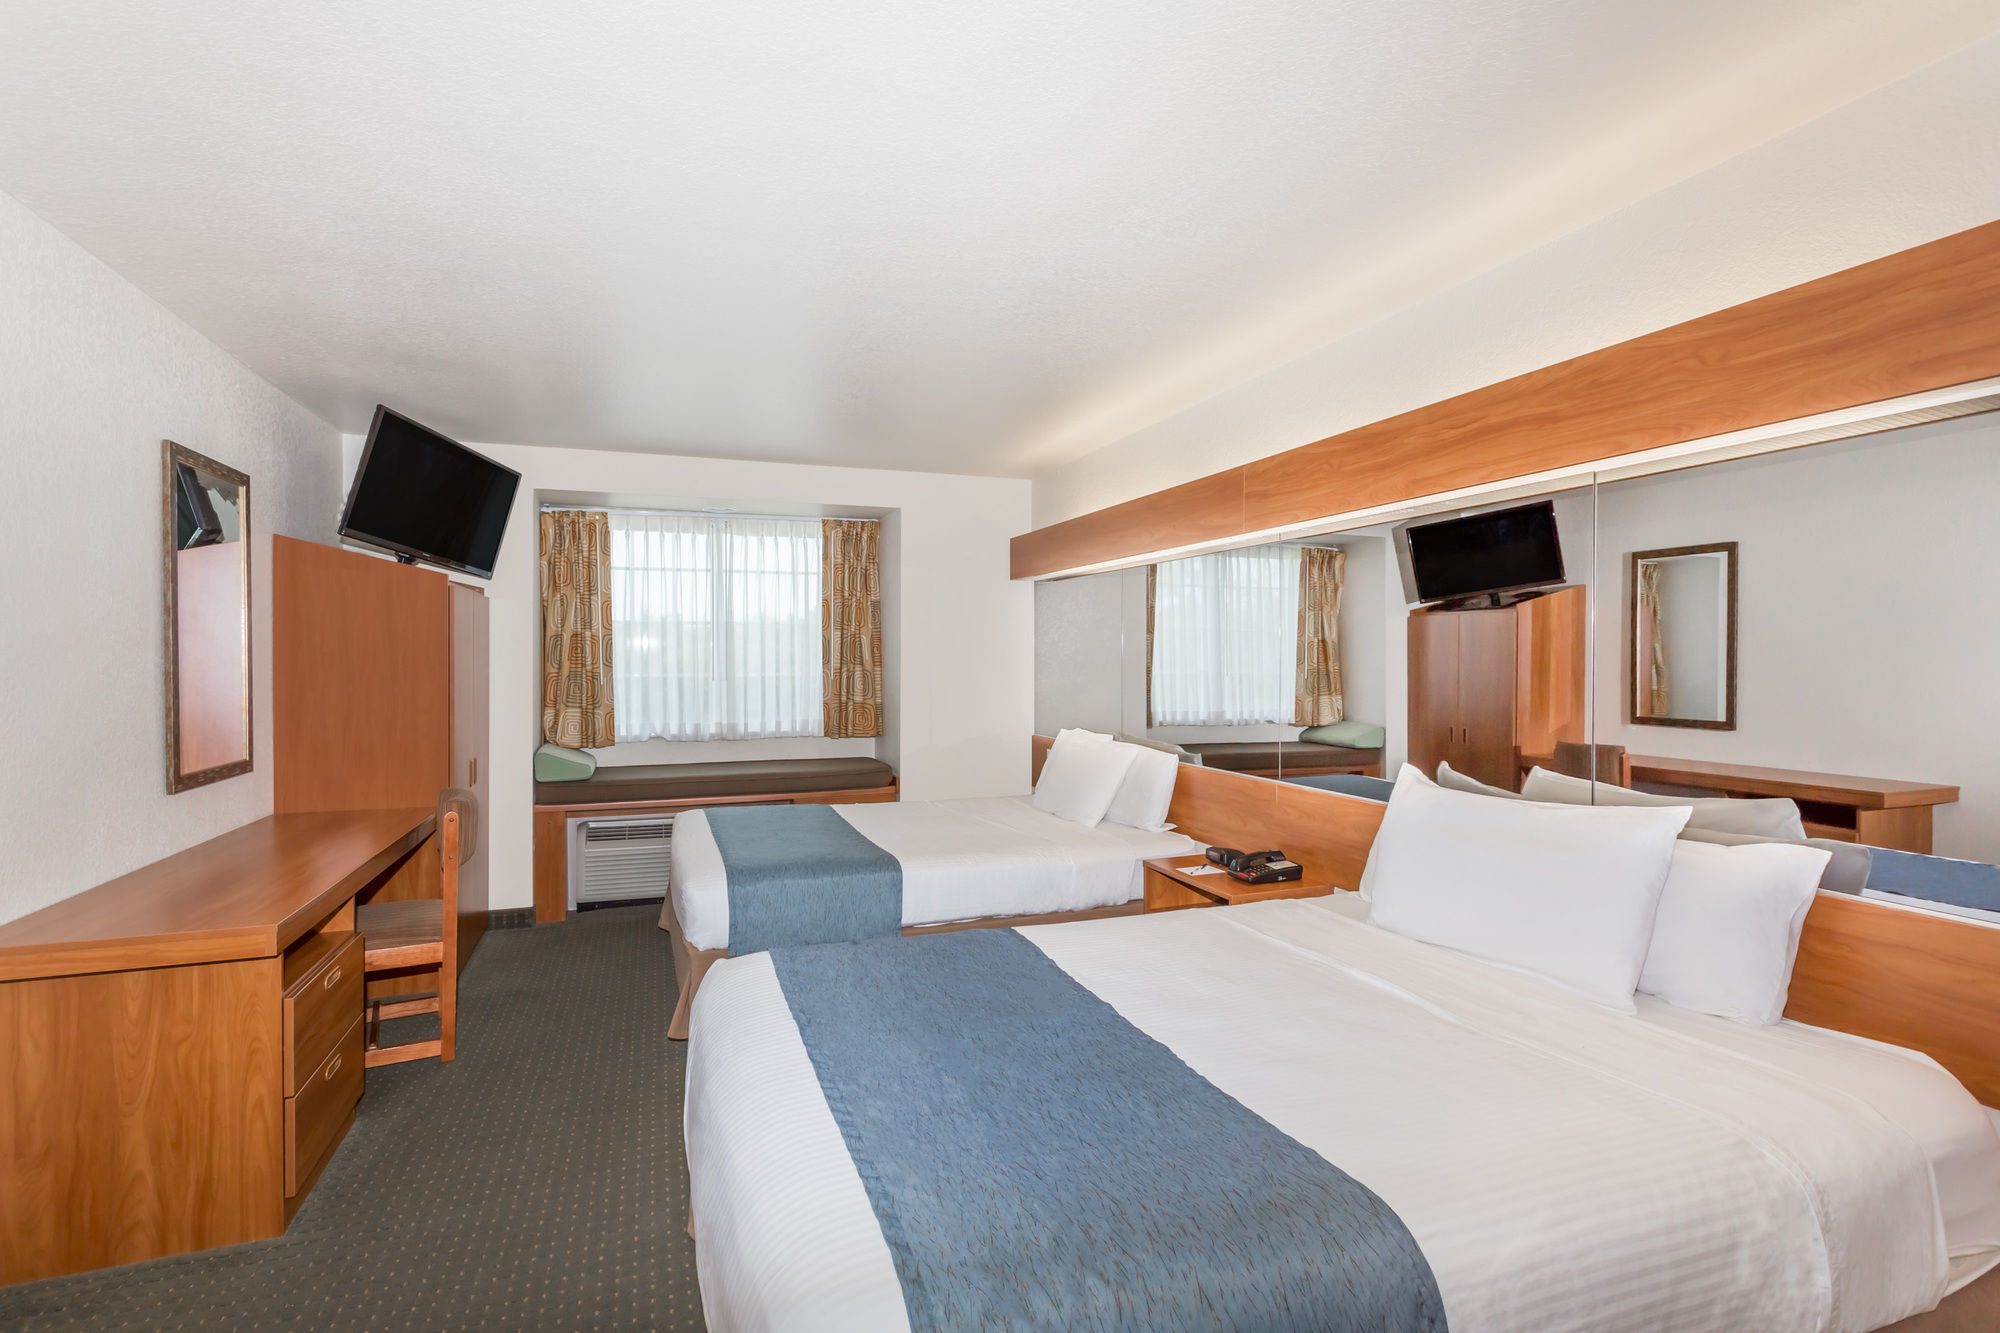 Microtel Inn & Suites by Wyndham Gulf Shores in Gulf Shores, AL